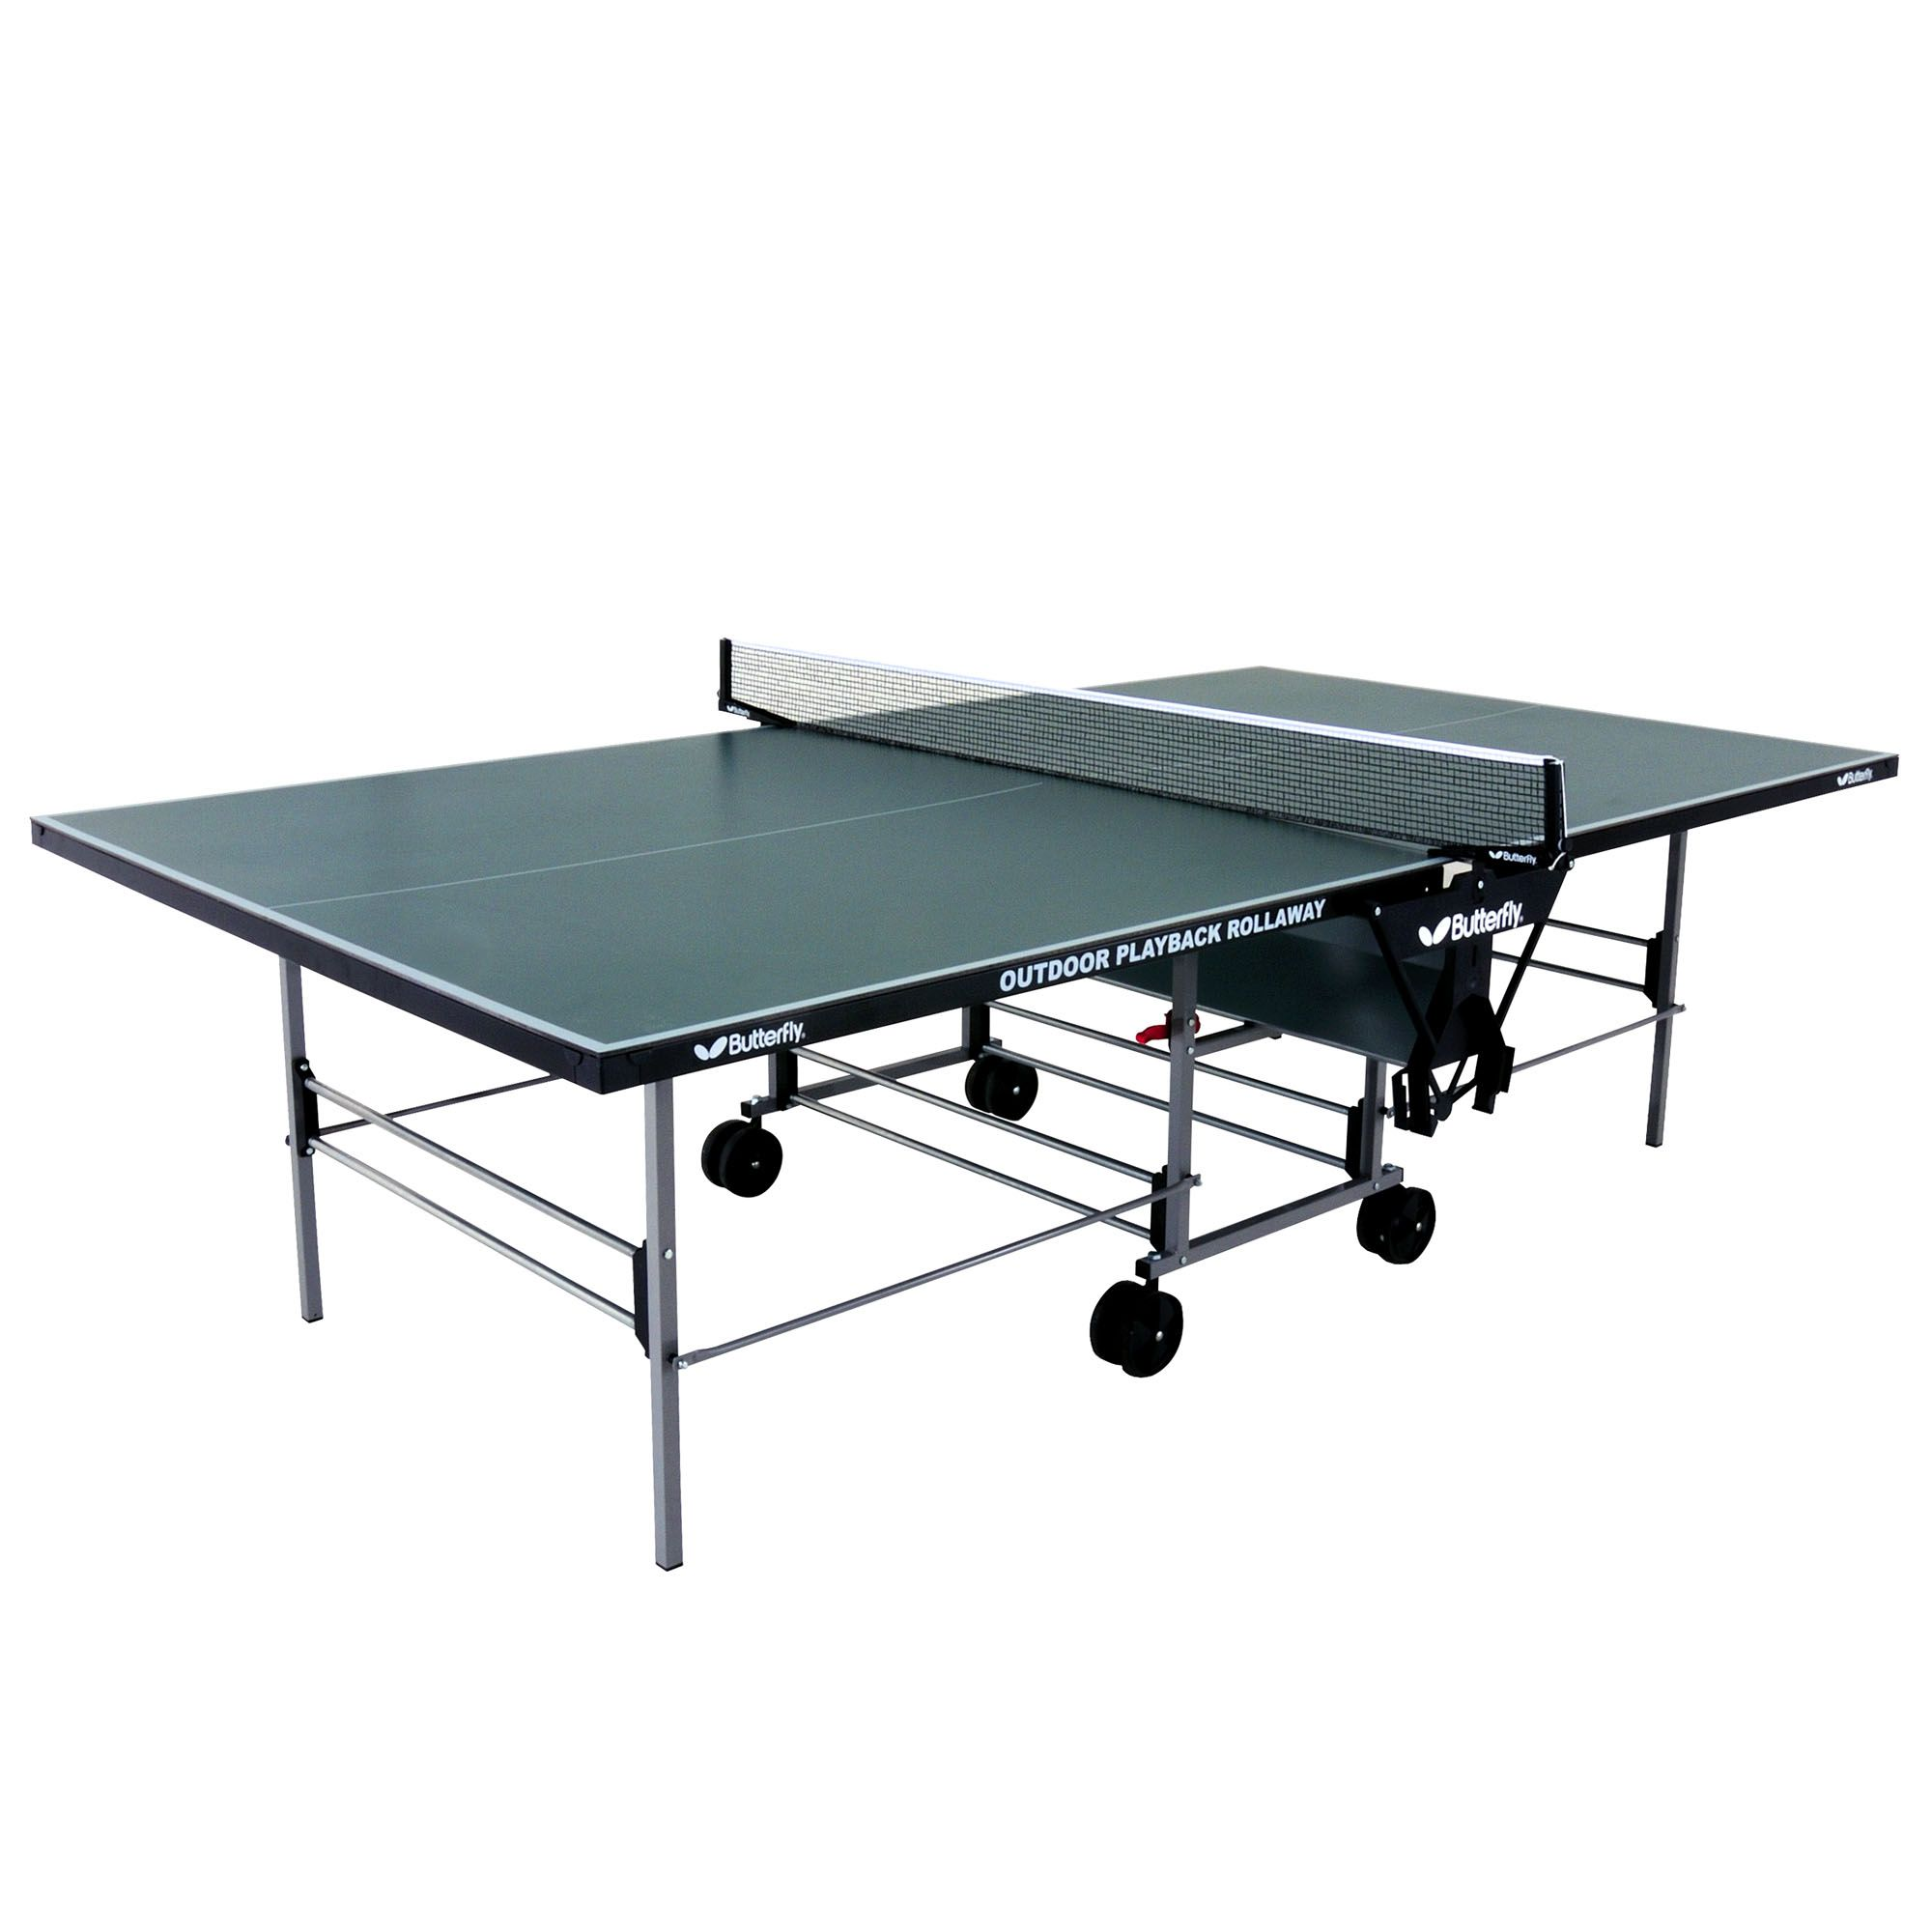 Butterfly playback rollaway outdoor table tennis table - Weatherproof table tennis table ...